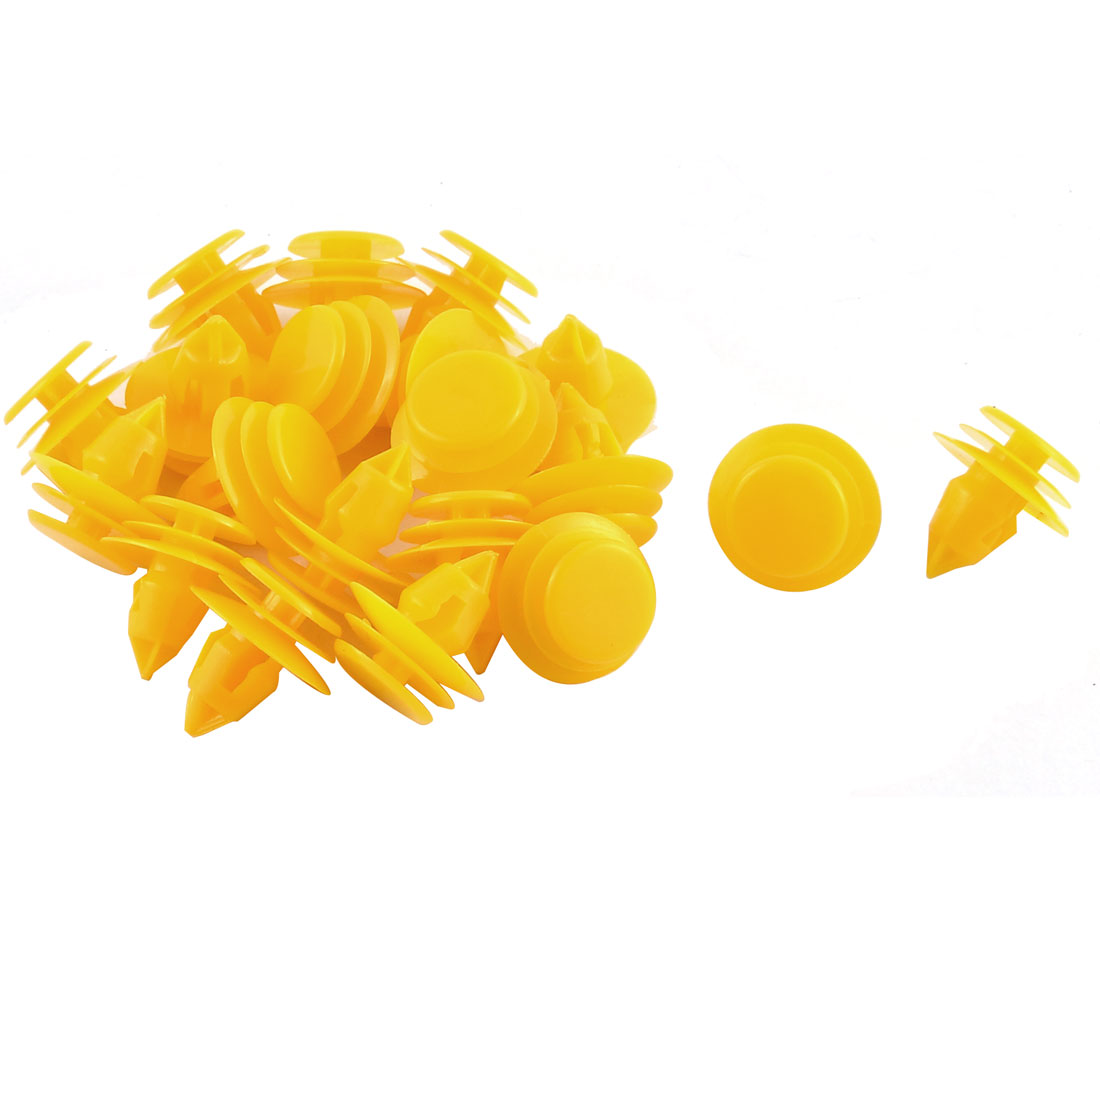 20 Pcs Yellow Plastic Rivet Bumper Door Interior Moulding Mat Clips